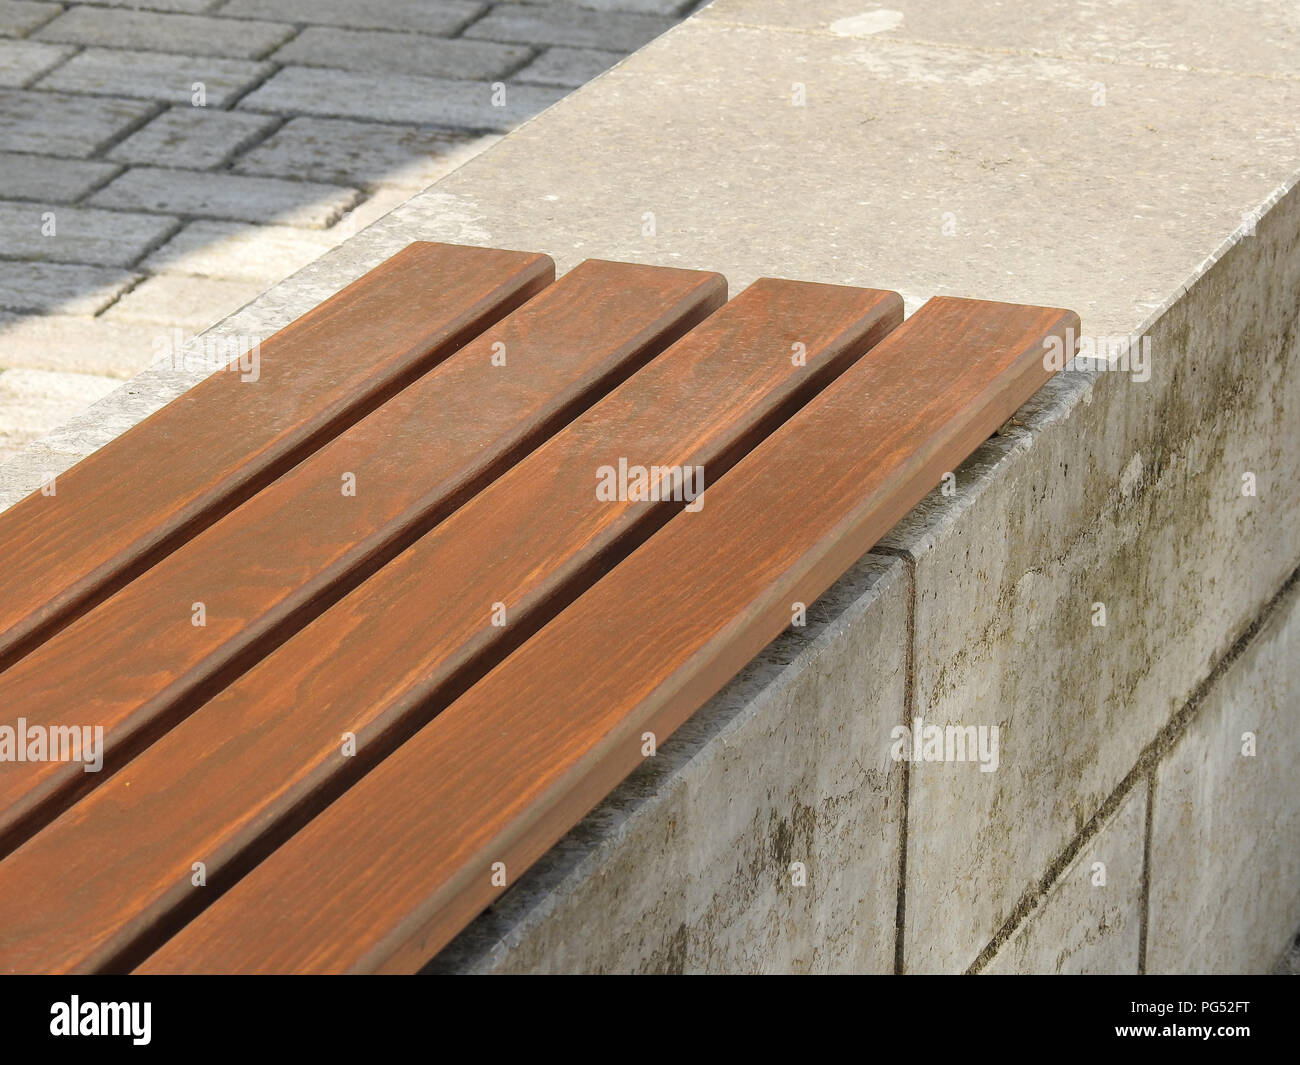 Part of a wooden bench - Stock Image